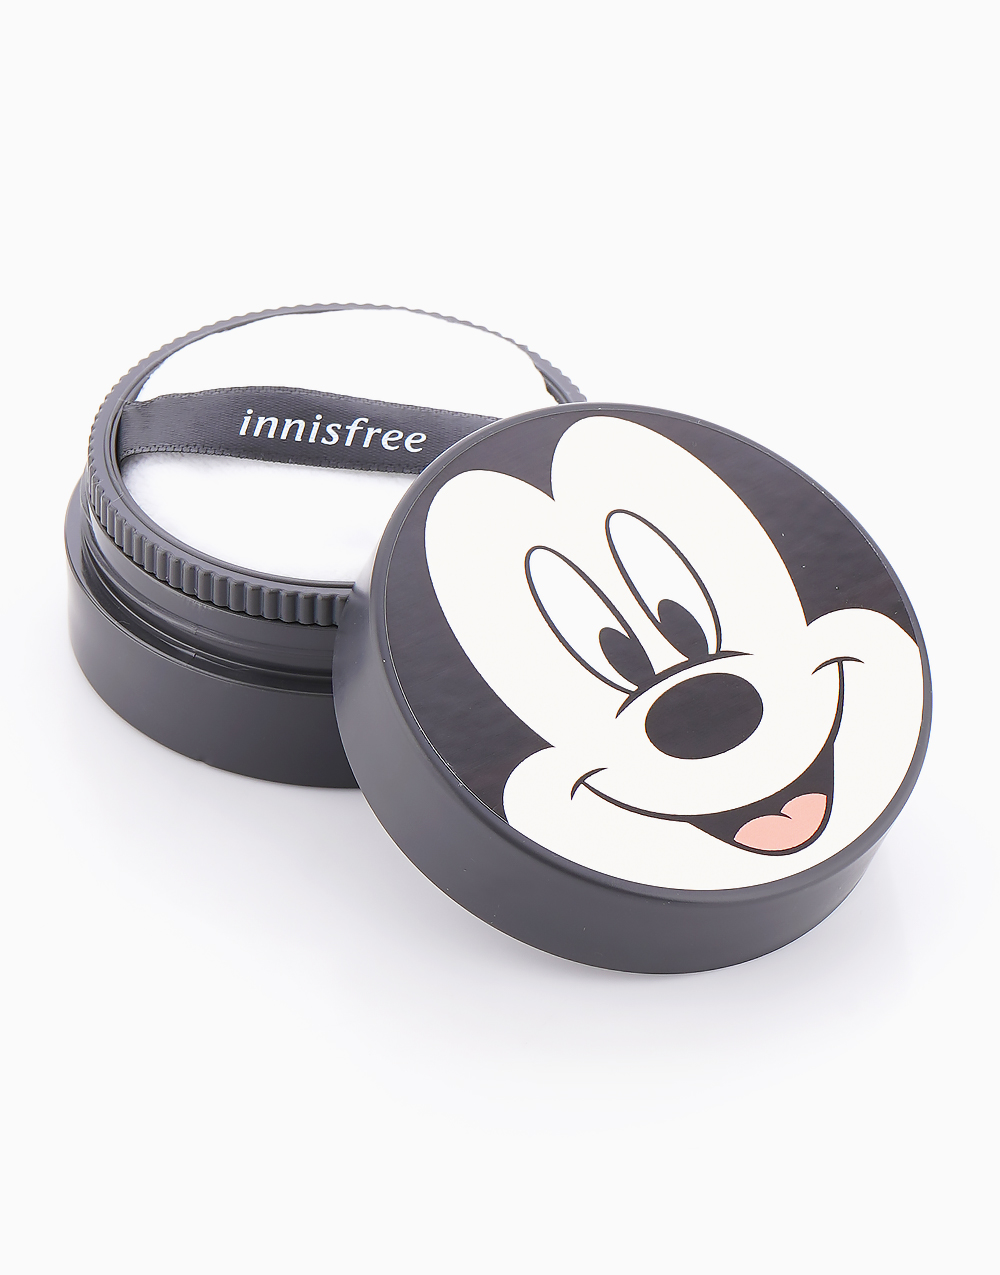 Pore Blur Powder Mickey Mouse Edition (11g) by Innisfree